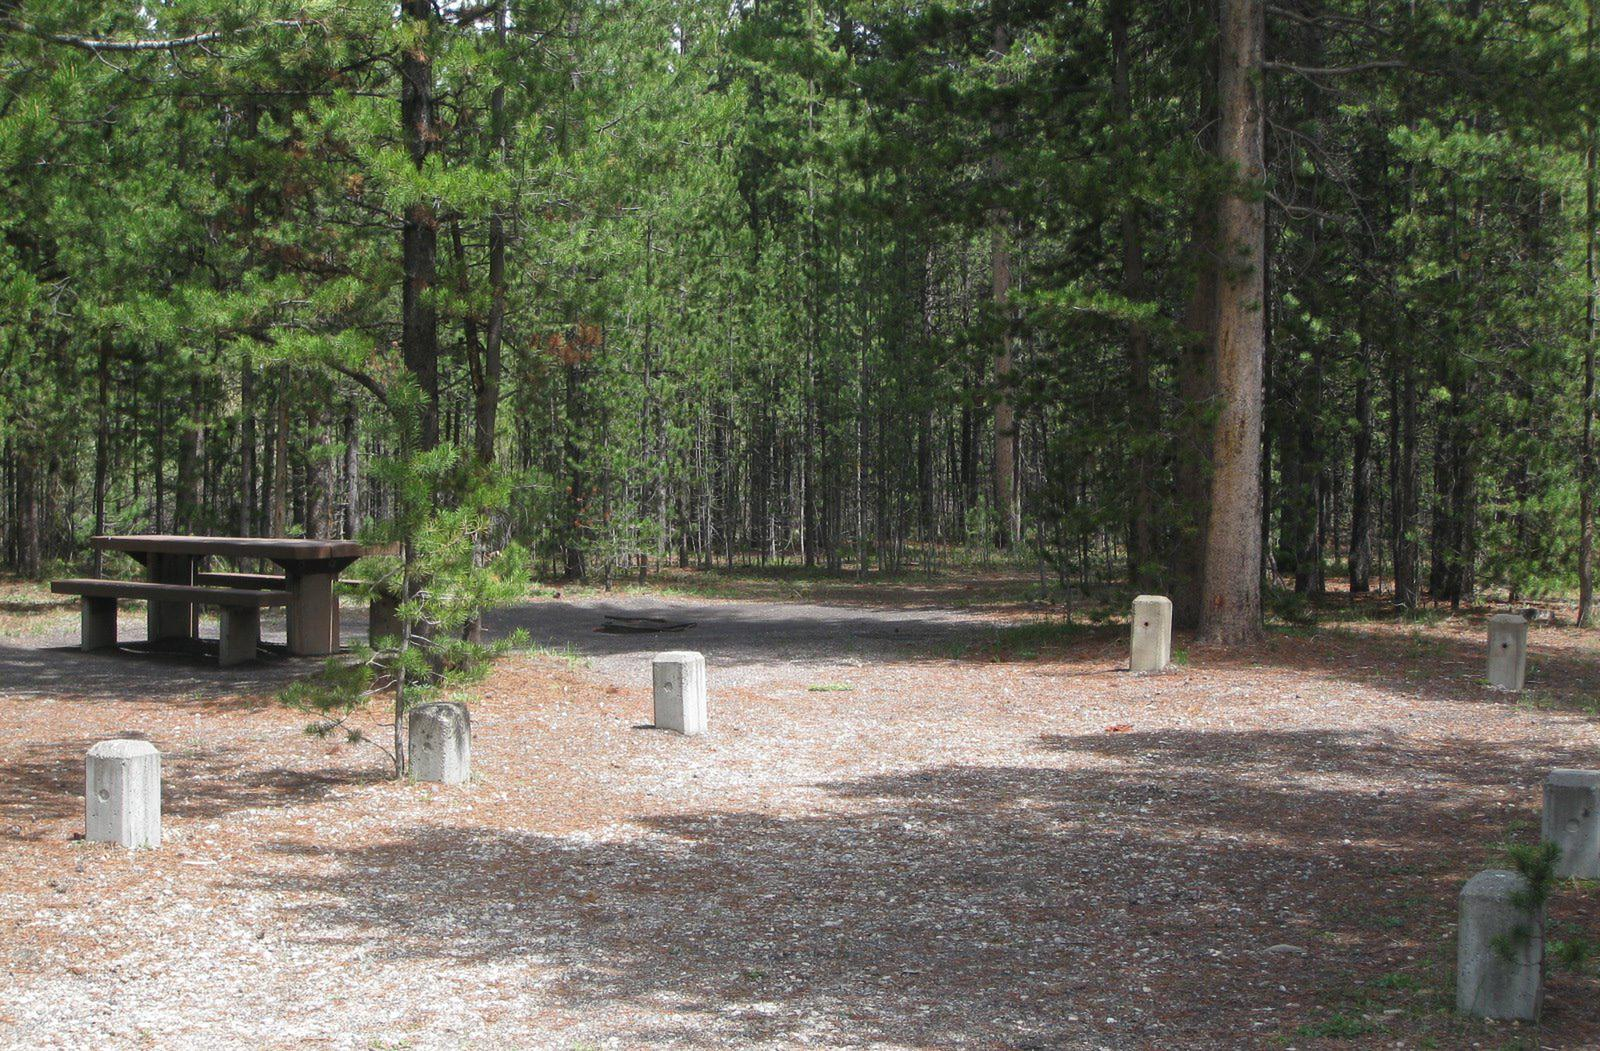 Site C25, surrounded by pine trees, picnic table & fire ringSite C25